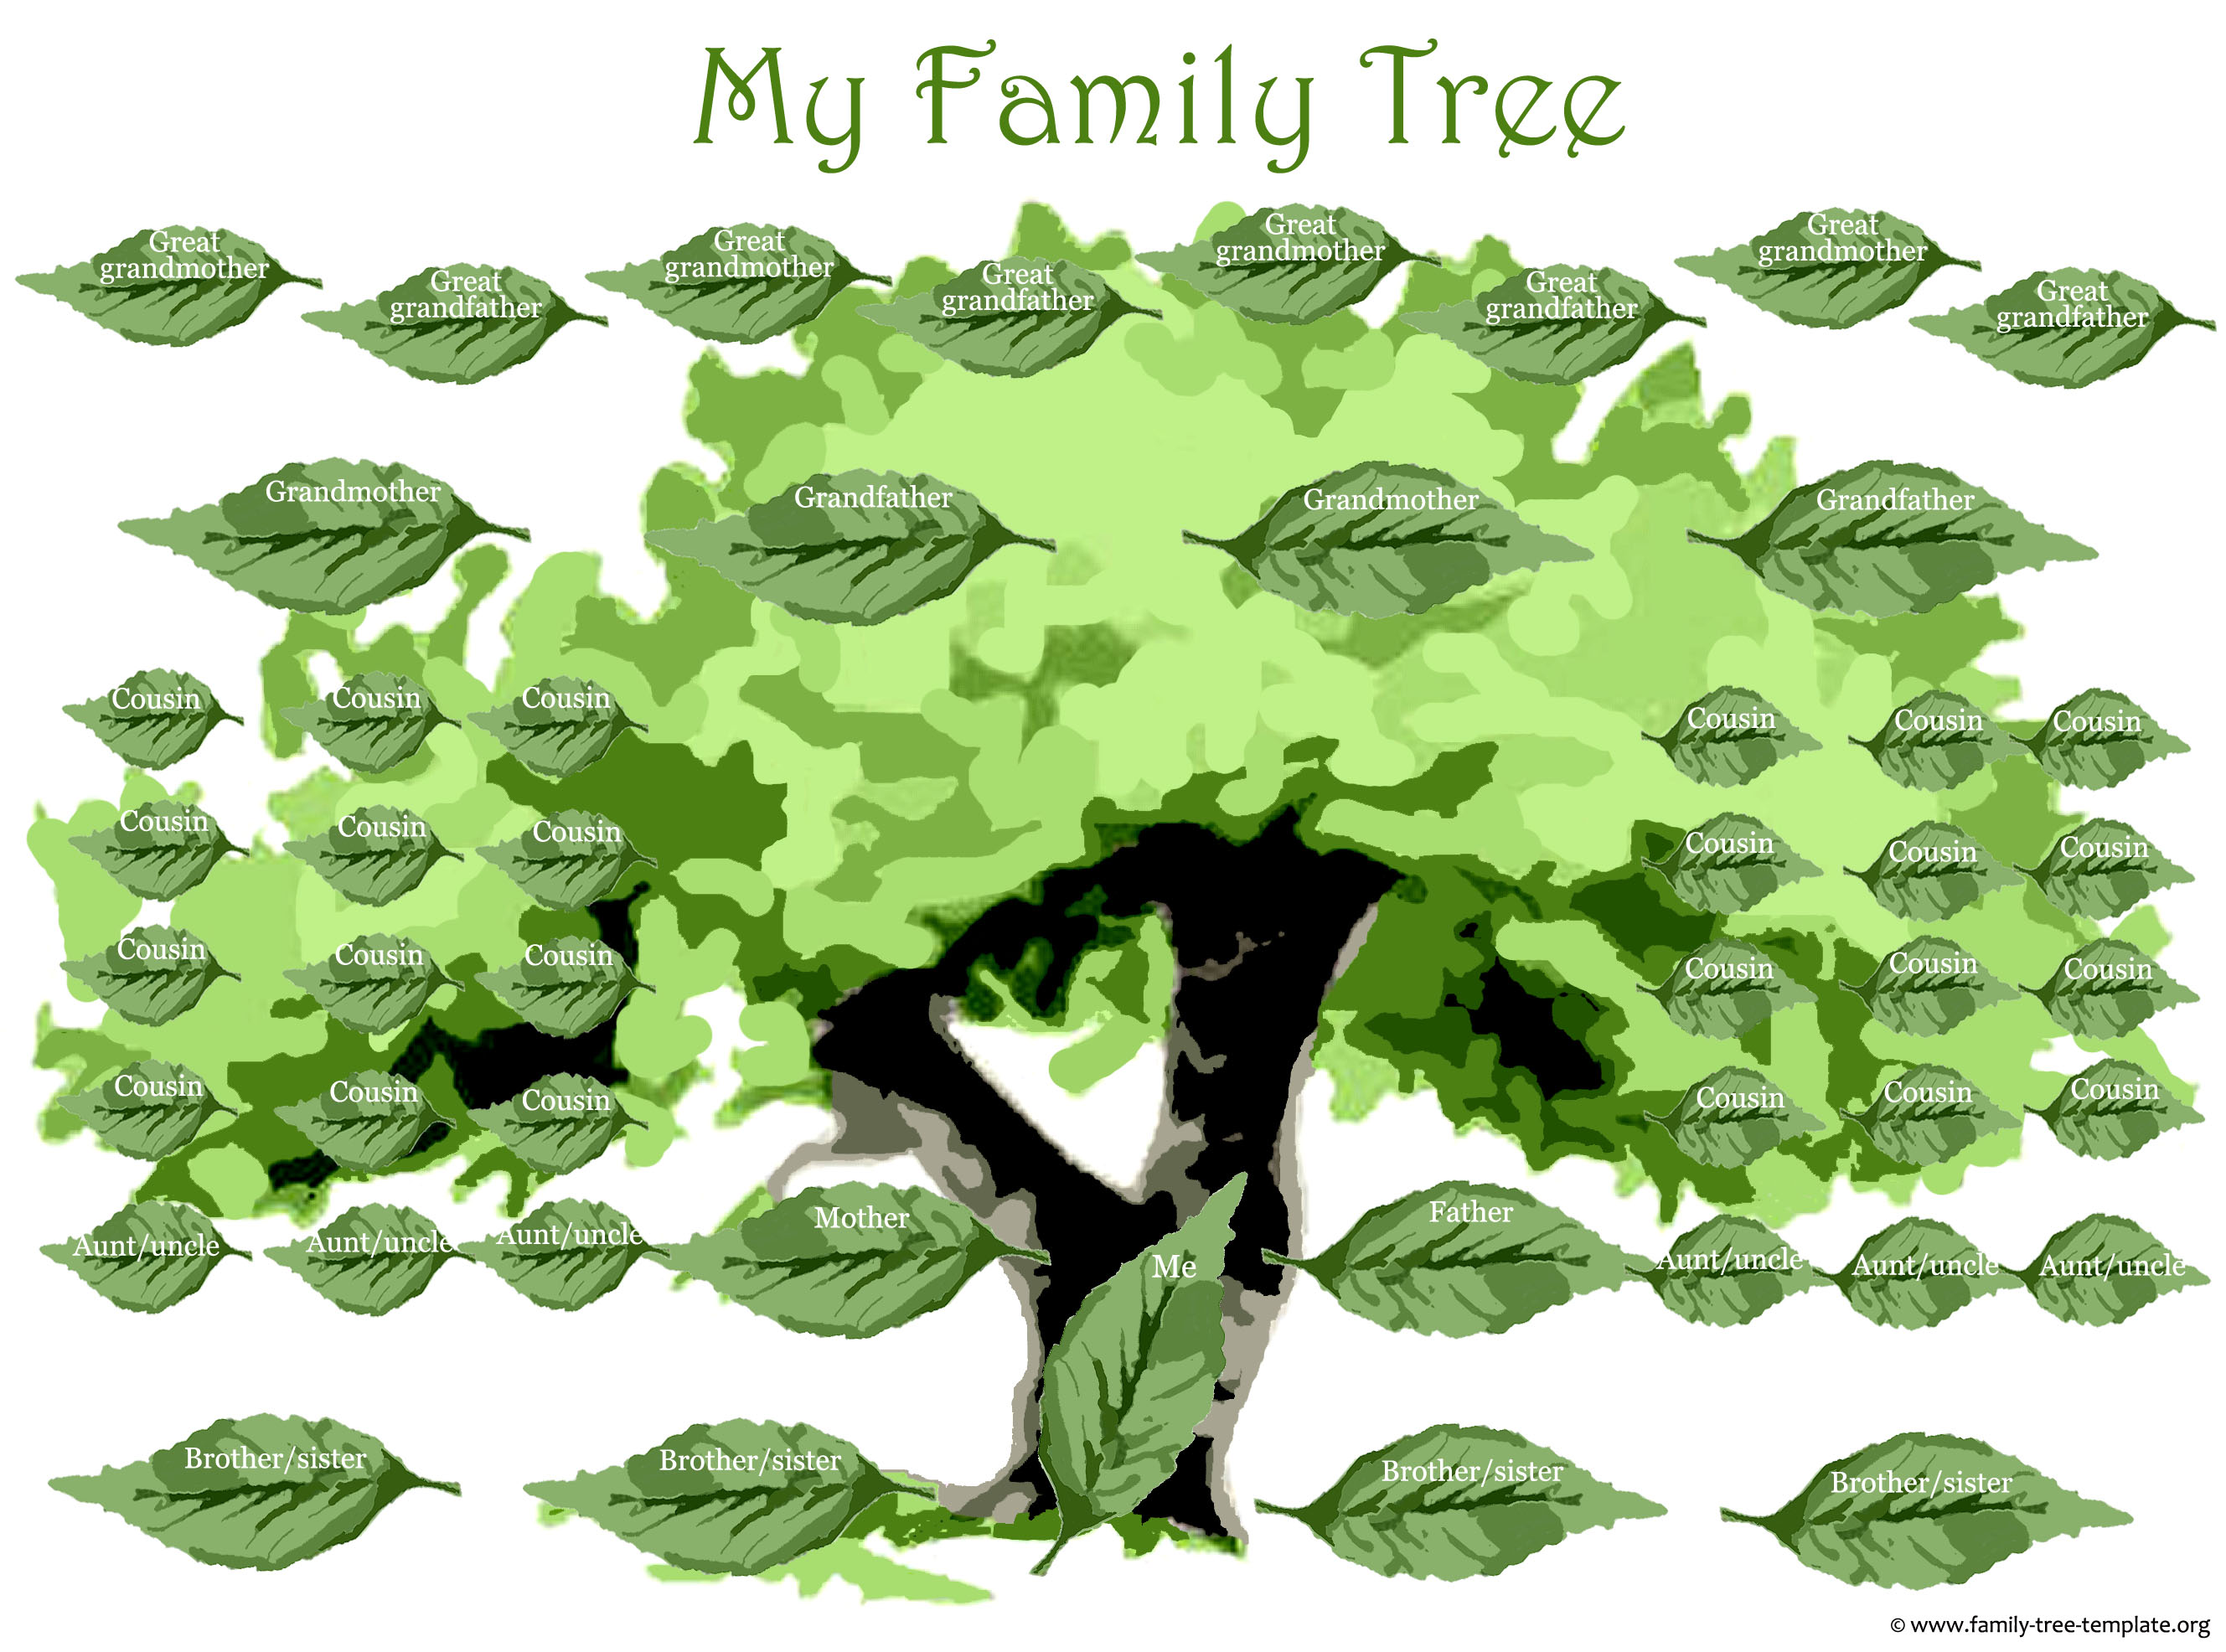 ... large blank family tree template 500 x 512 82 kb jpeg big blank family